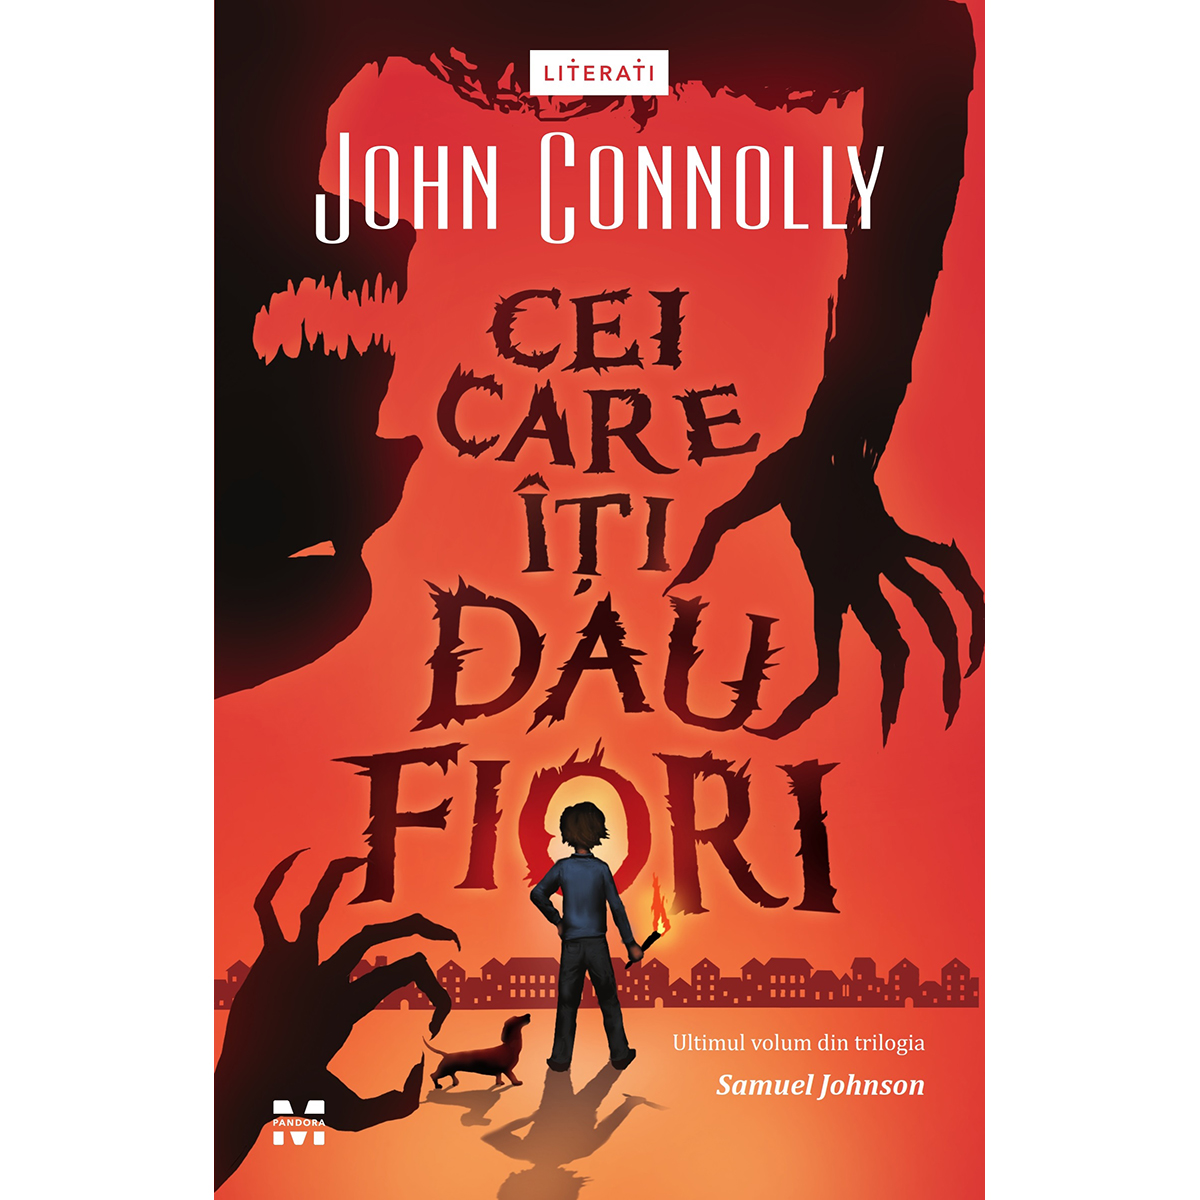 Carte Editura Pandora M, Cei care iti dau fiori (Samuel Johnson 3), John Connolly